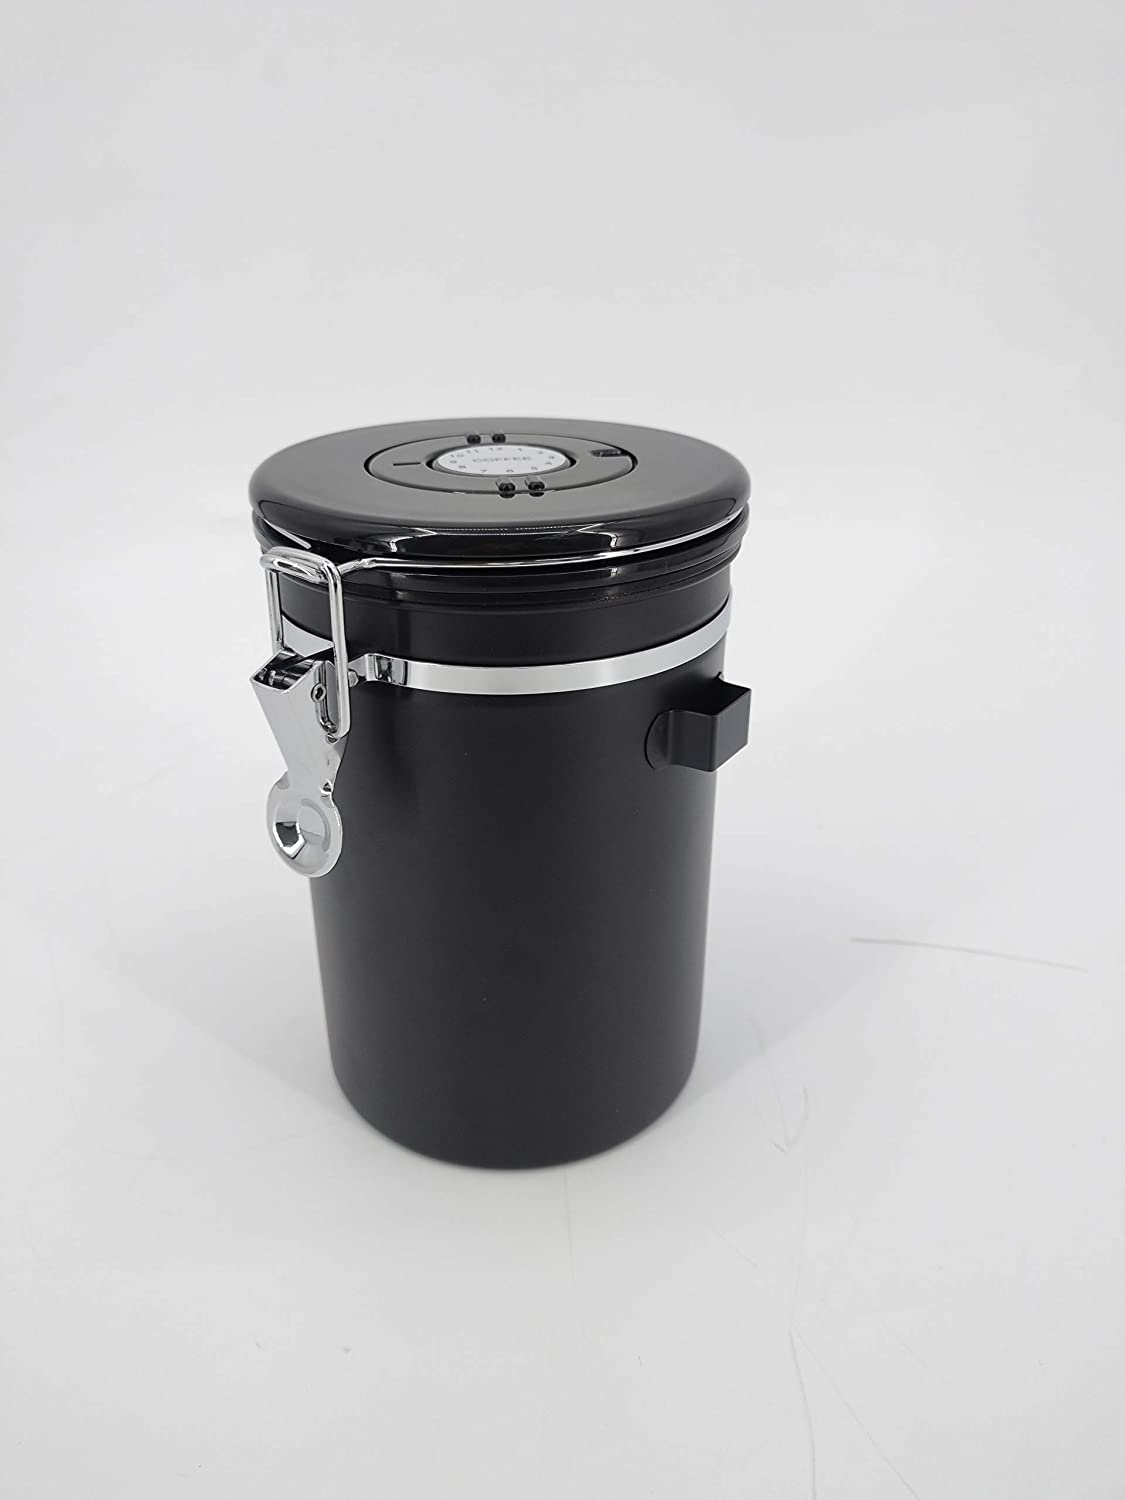 FixtureDisplays Airtight Sealed Coffee Bean Storage Canister wit